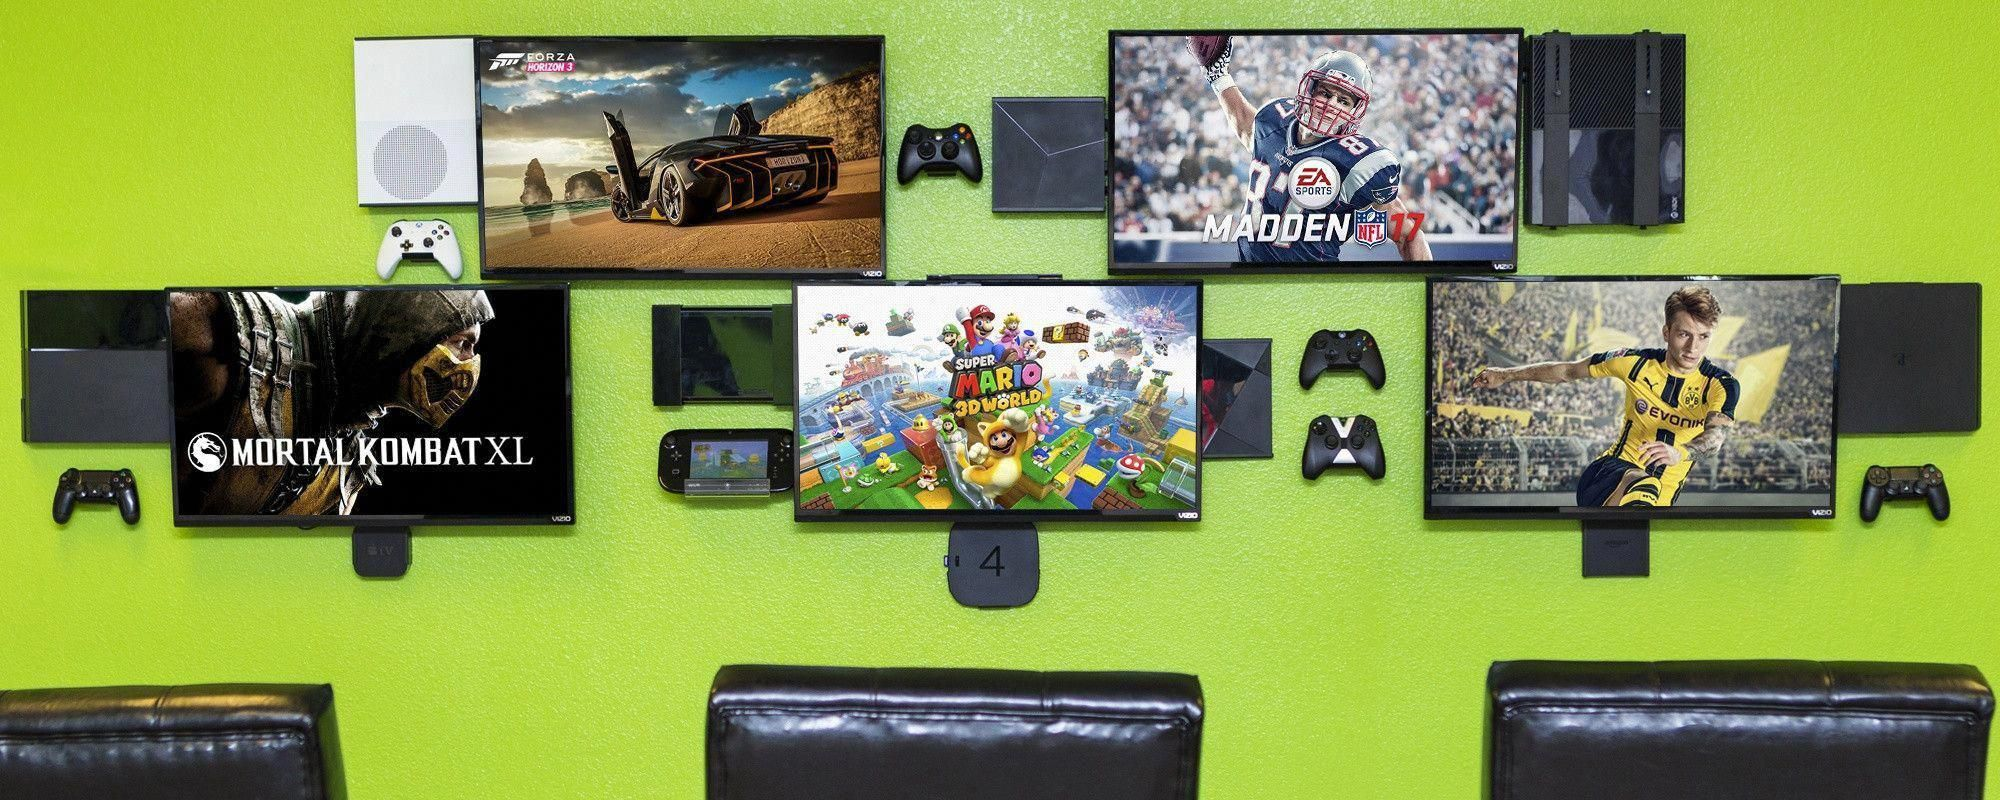 Universal Wall Mounts for Playstation, Xbox, Wii, Apple TV